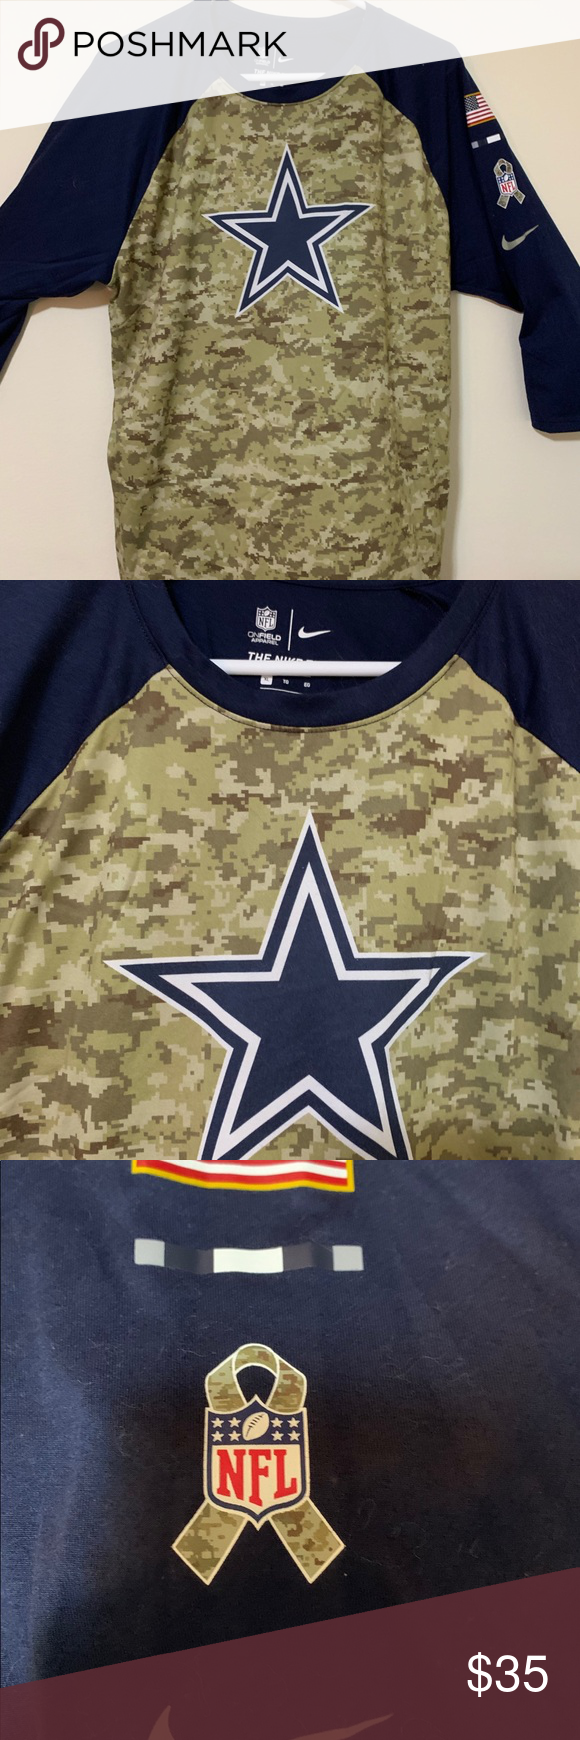 Nike Dallas Cowboys Salute To Service 3/4 Sleeve Never worn Cowboys Salute To Service 3/4 Sleeve Nike Shirts Tees - Long Sleeve #salutetoservice Nike Dallas Cowboys Salute To Service 3/4 Sleeve Never worn Cowboys Salute To Service 3/4 Sleeve Nike Shirts Tees - Long Sleeve #salutetoservice